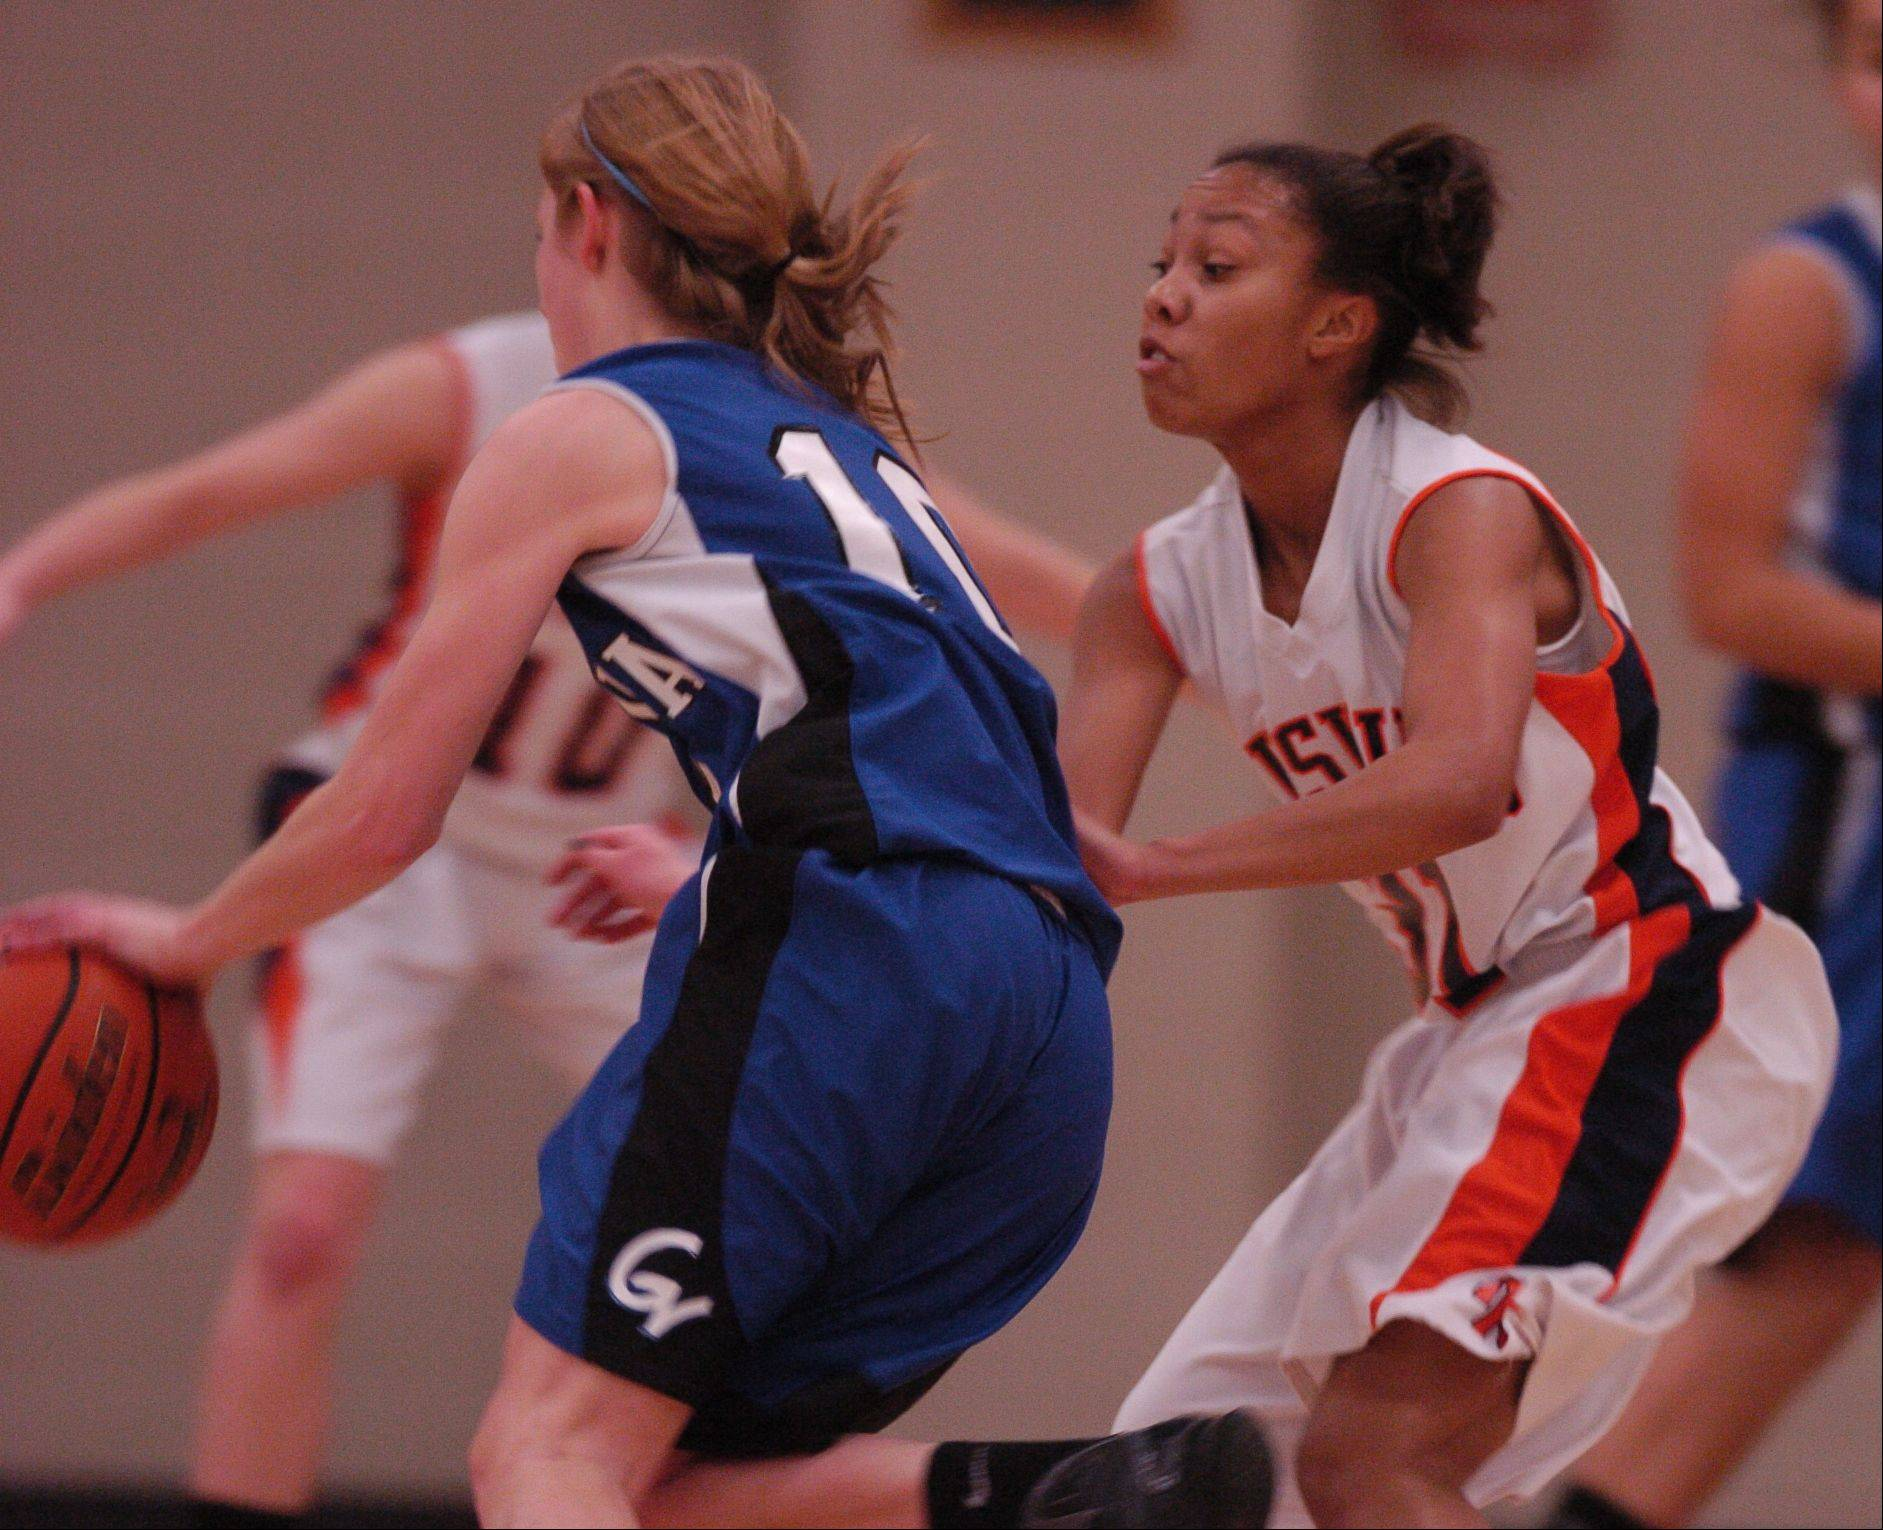 Images from the Naperville North vs. Geneva girls basketball game Thursday, December 22, 2011.